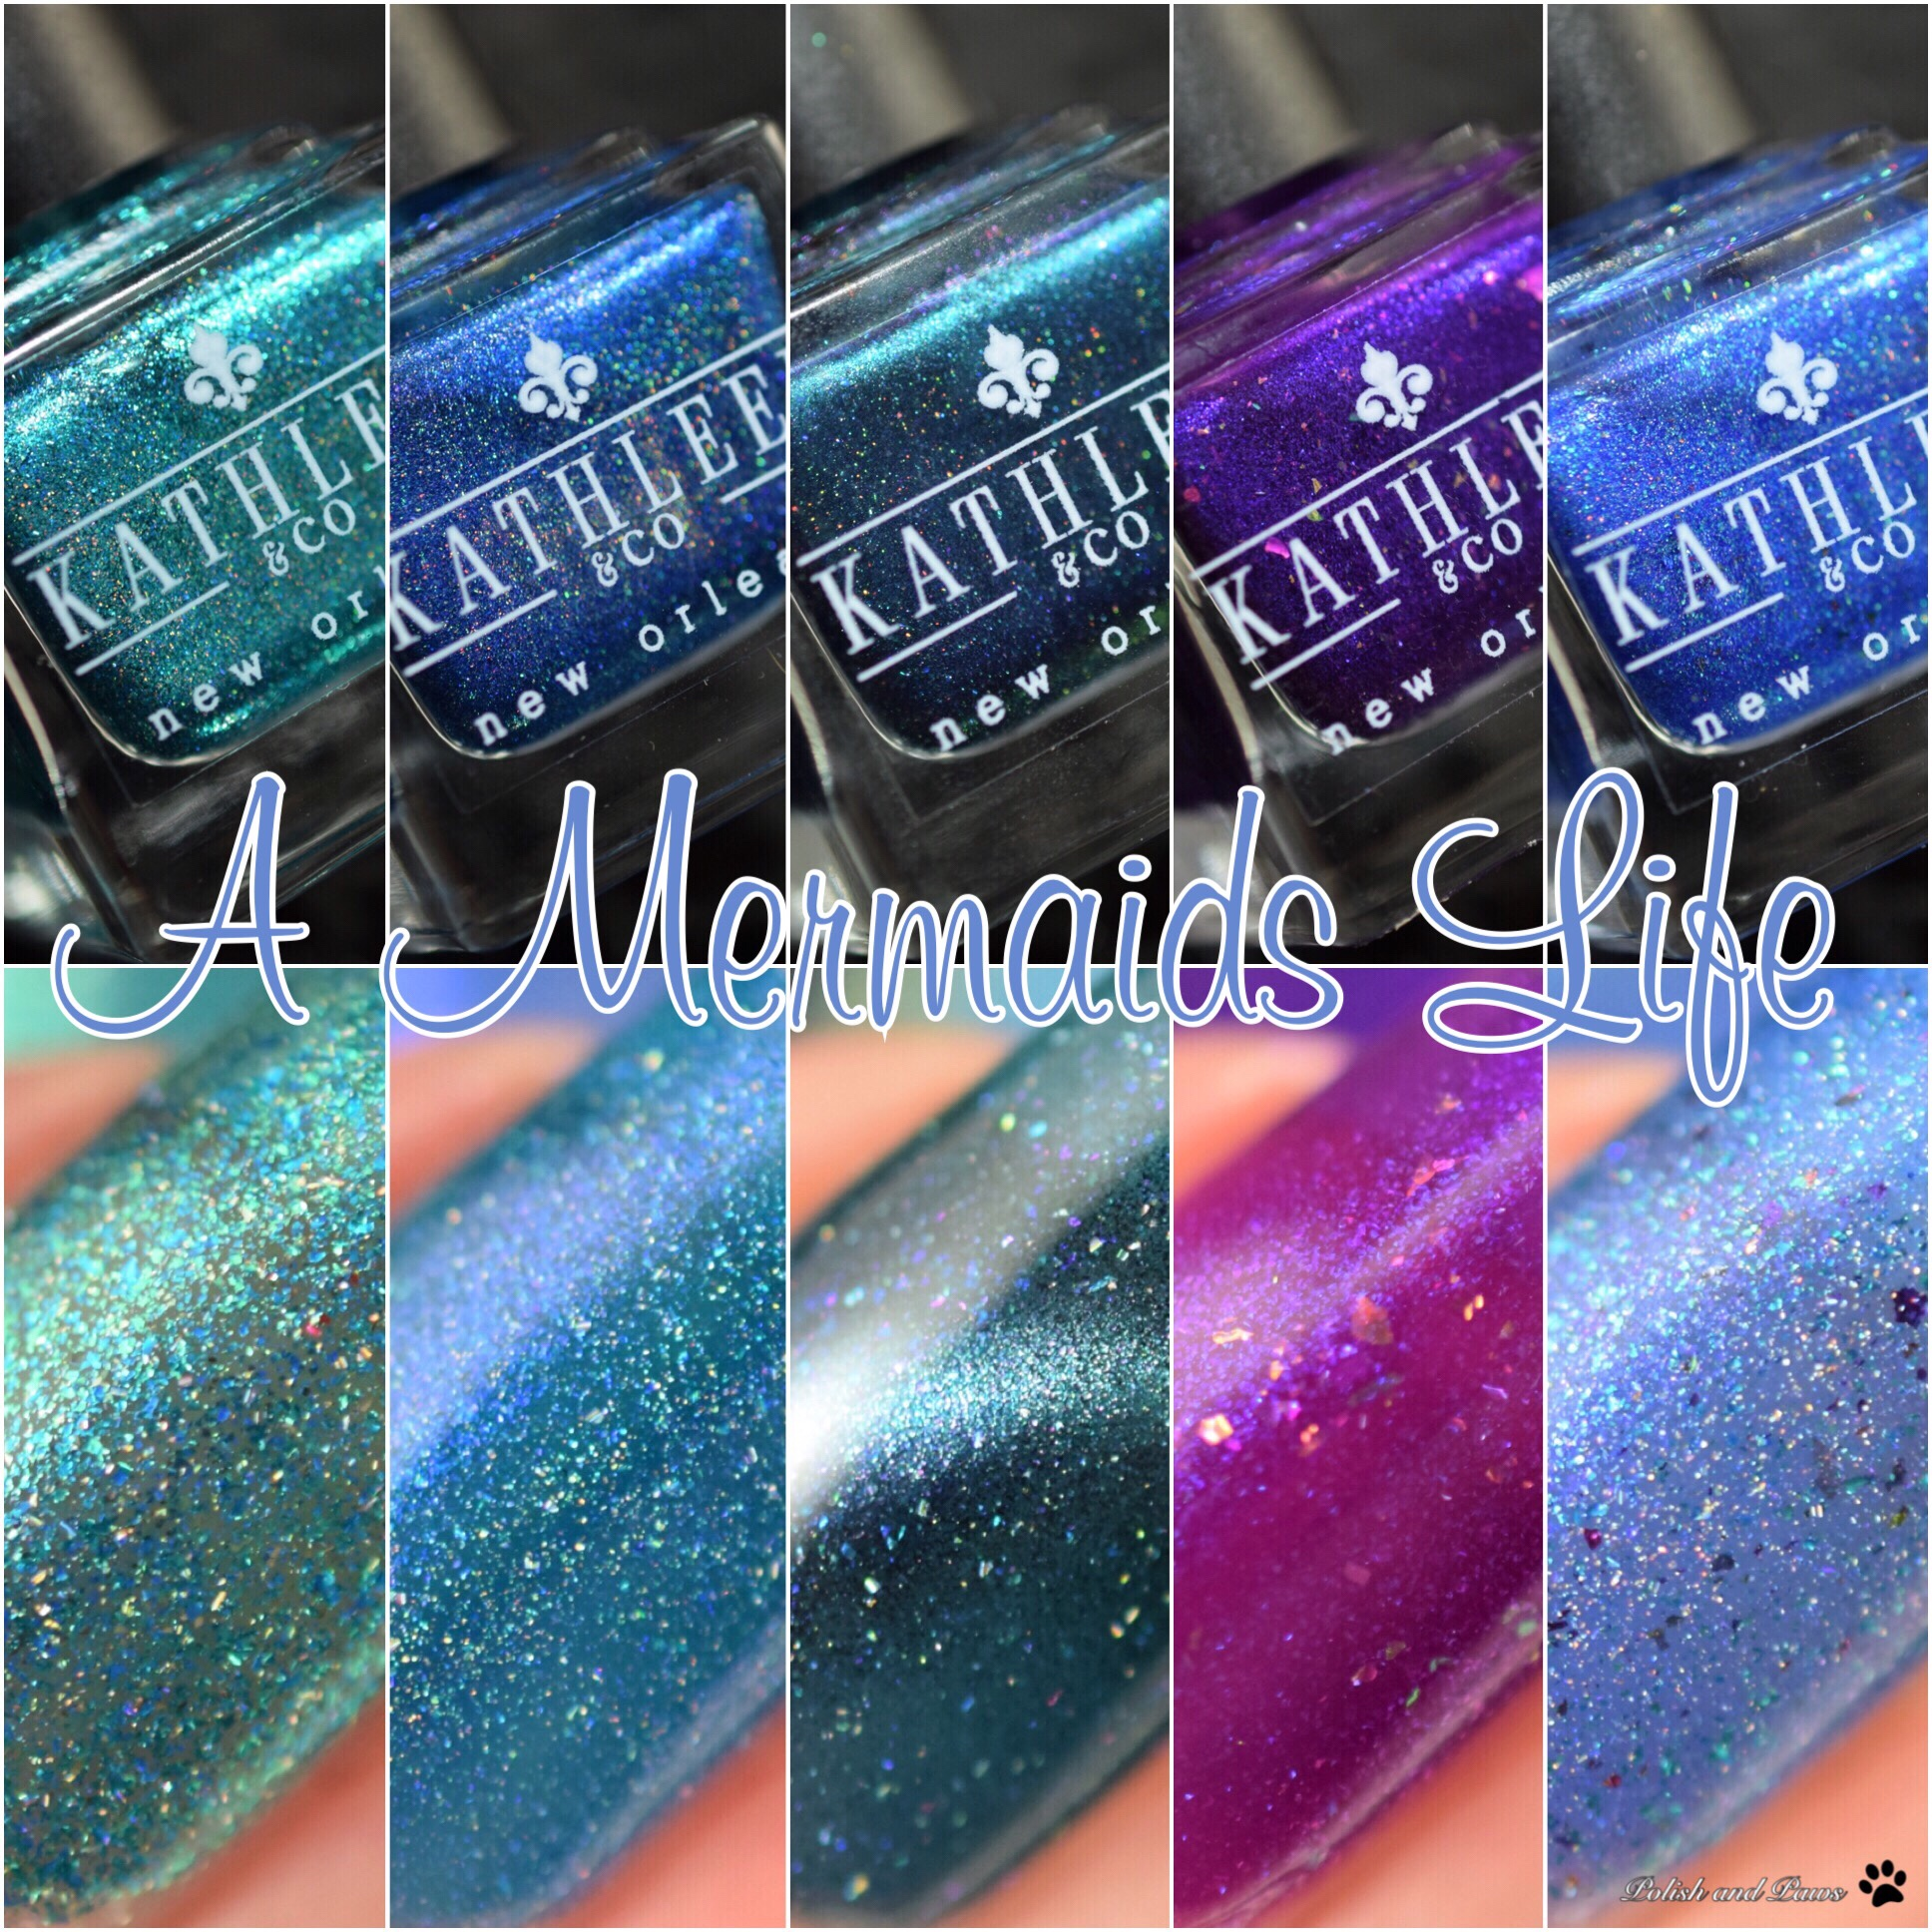 Kathleen & Co Nail Lacquer A Mermaids Life Collection